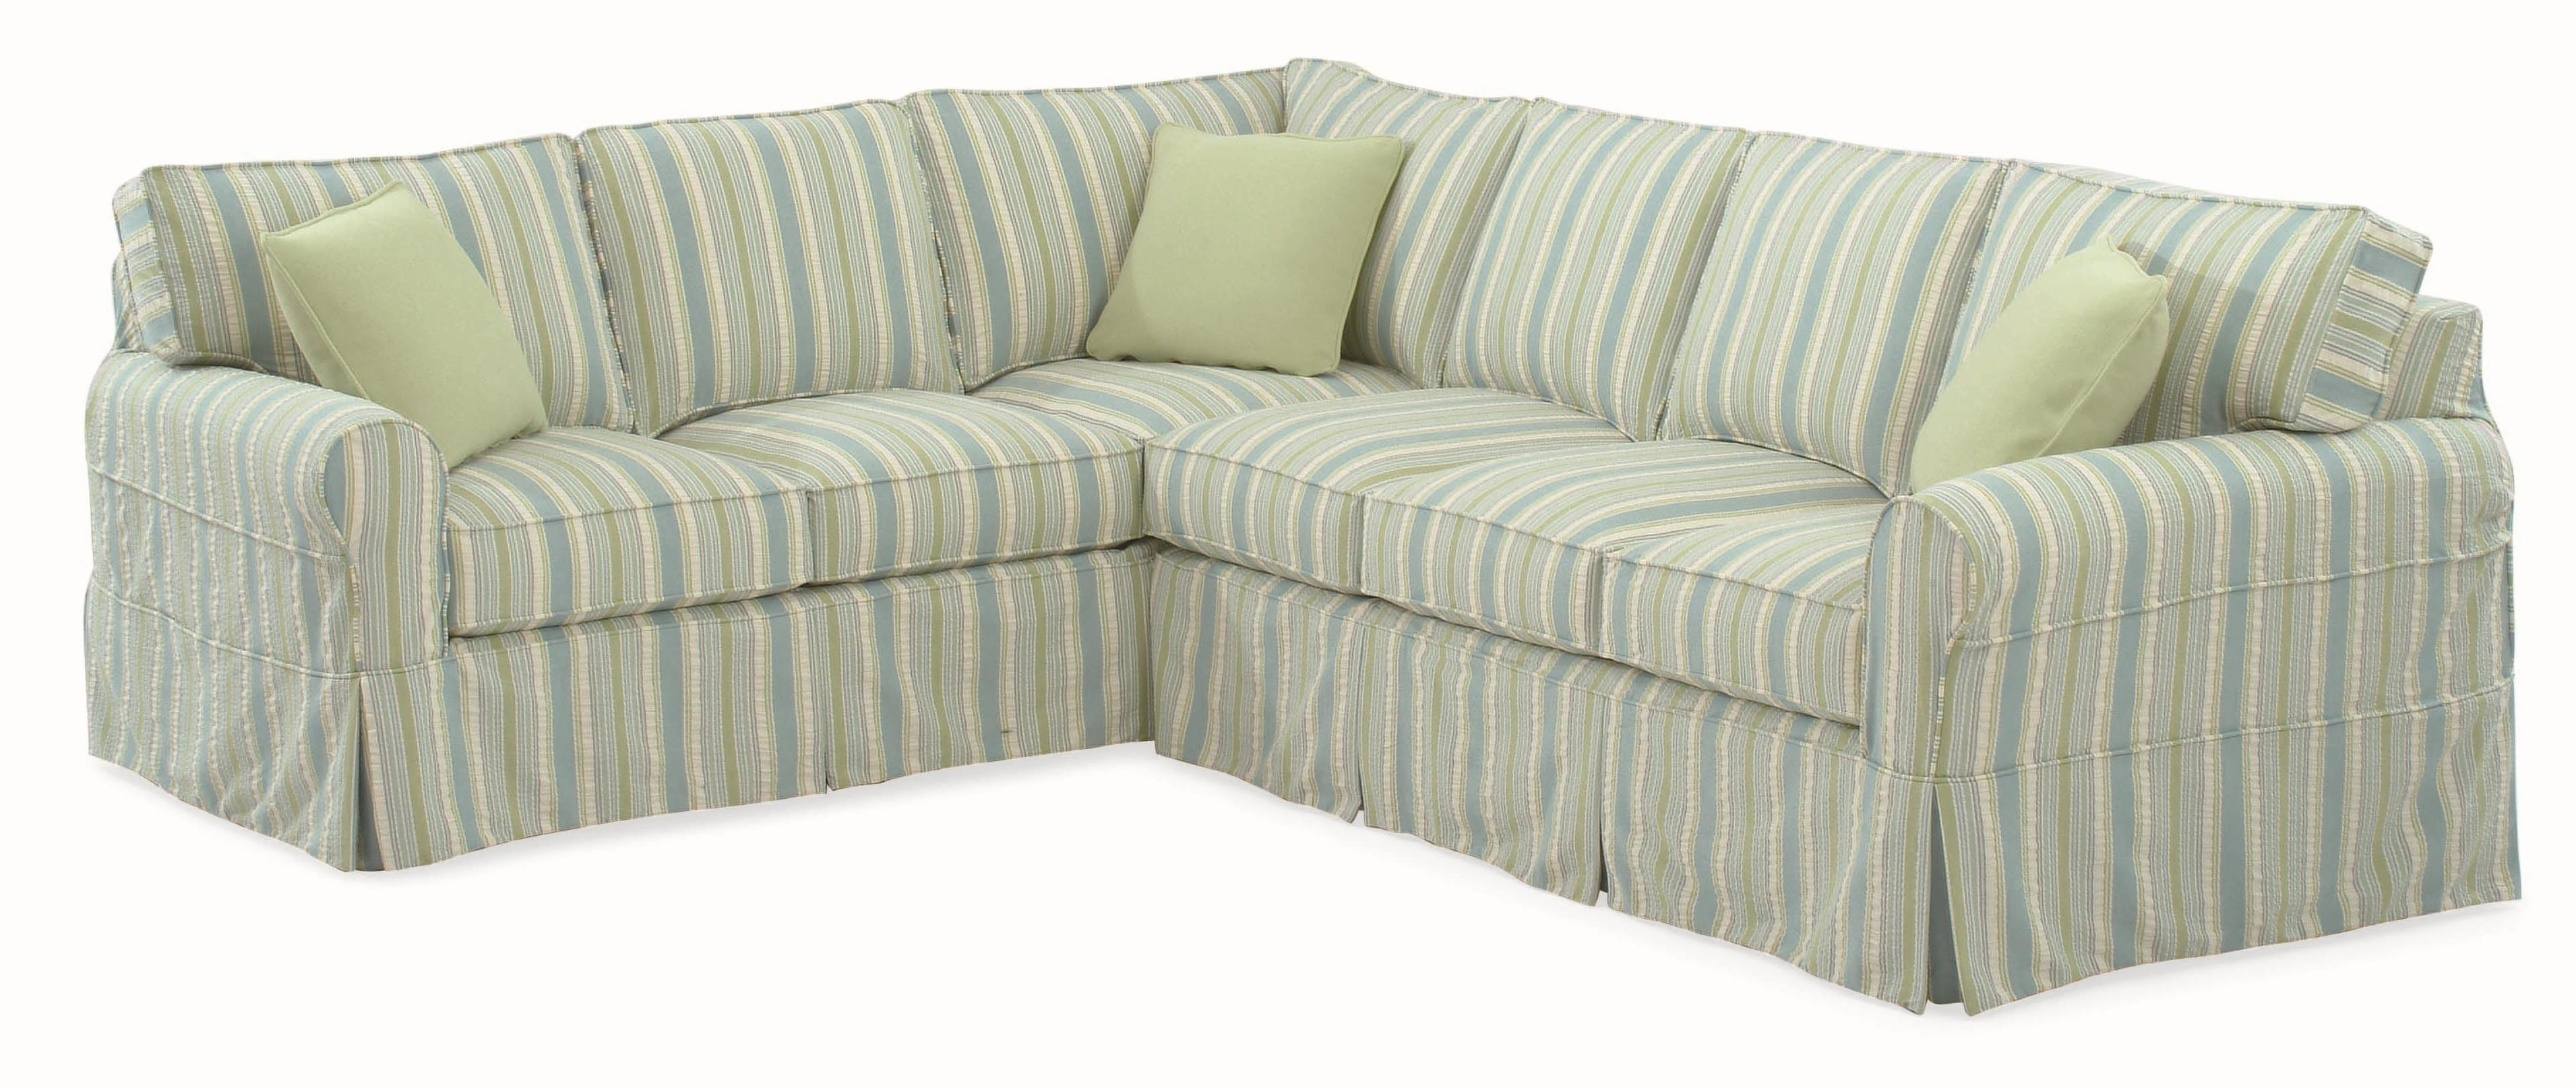 2018 Braxton Culler 728 Casual Sectional Sofa With Rolled Arms And Within Made In North Carolina Sectional Sofas (View 8 of 20)